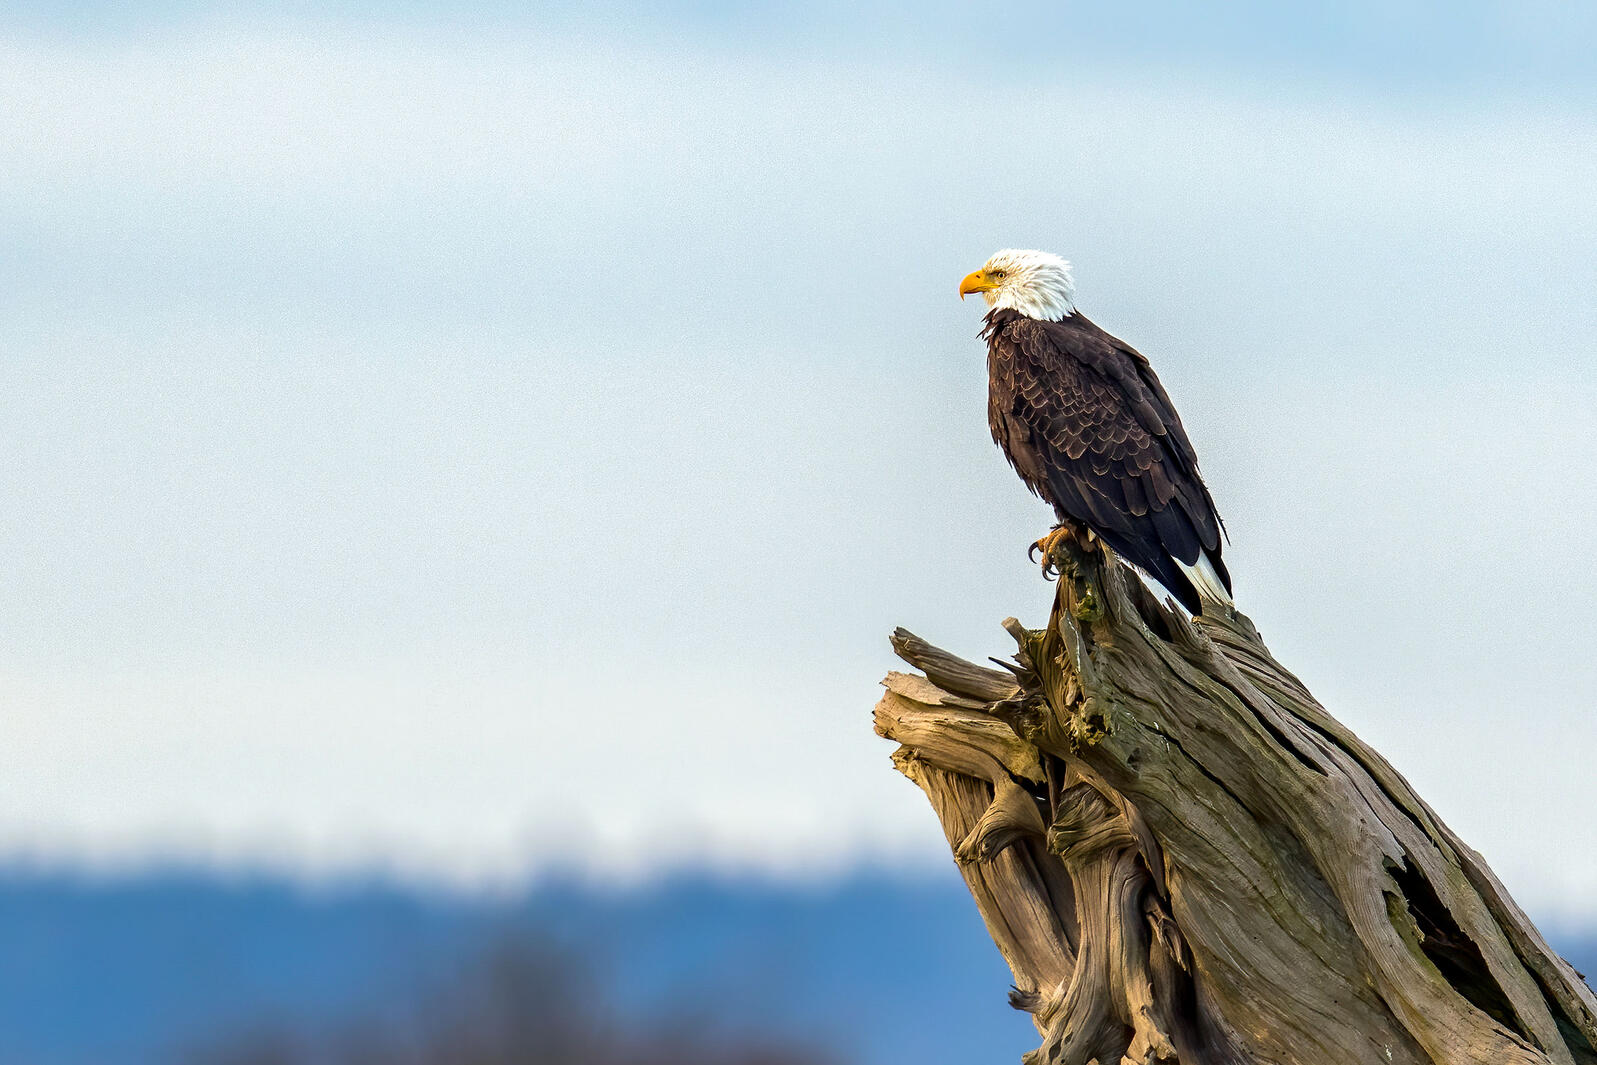 A Bald Eagle sits on a dead tree snag in front of a peaceful blue sky. Mick Thompson